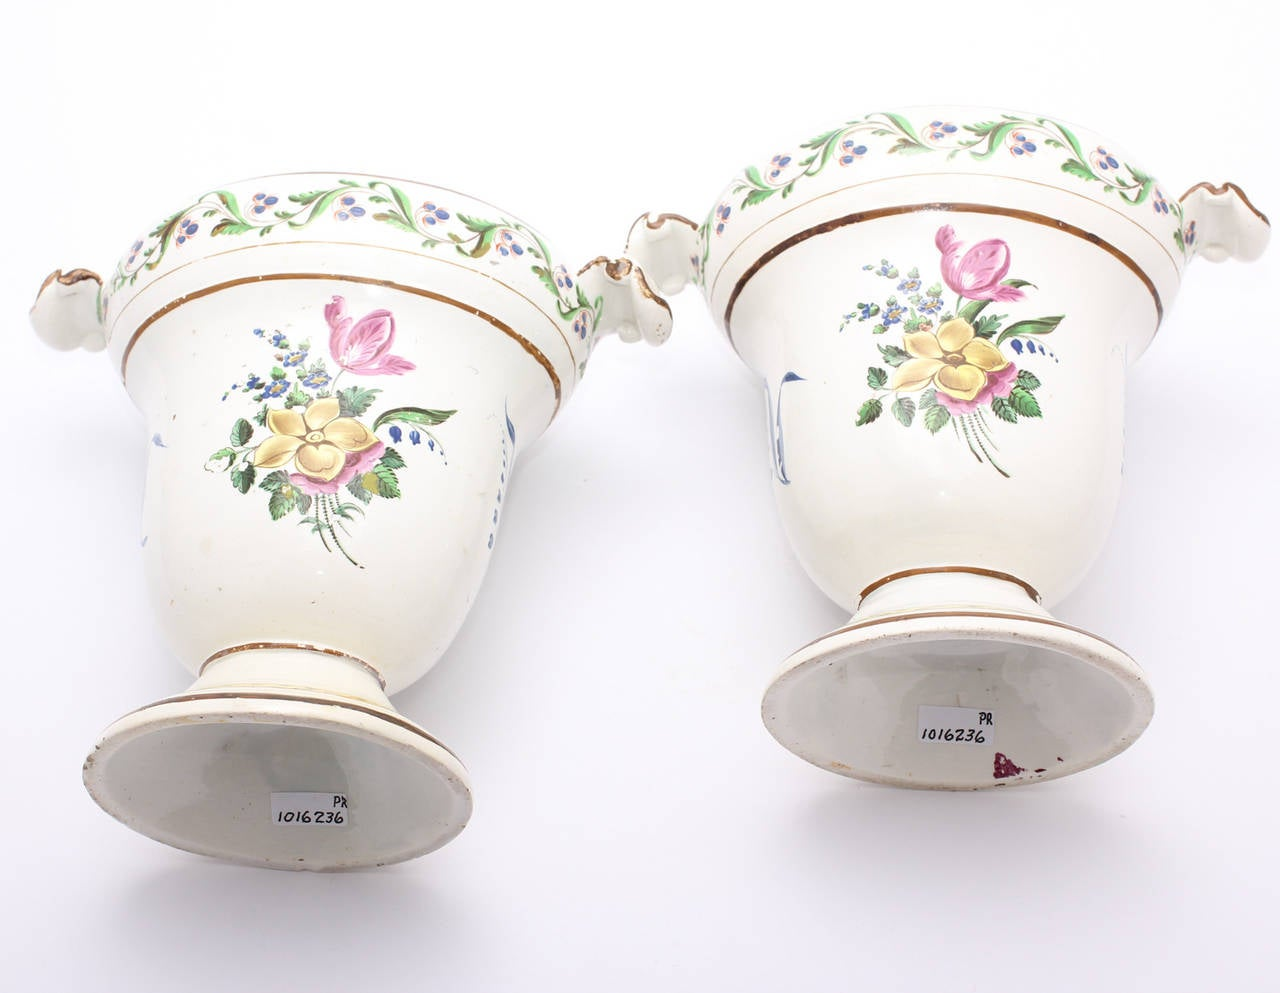 Neoclassical Pair of French Creamware Vases, Flower Decoration, circa 1800 For Sale